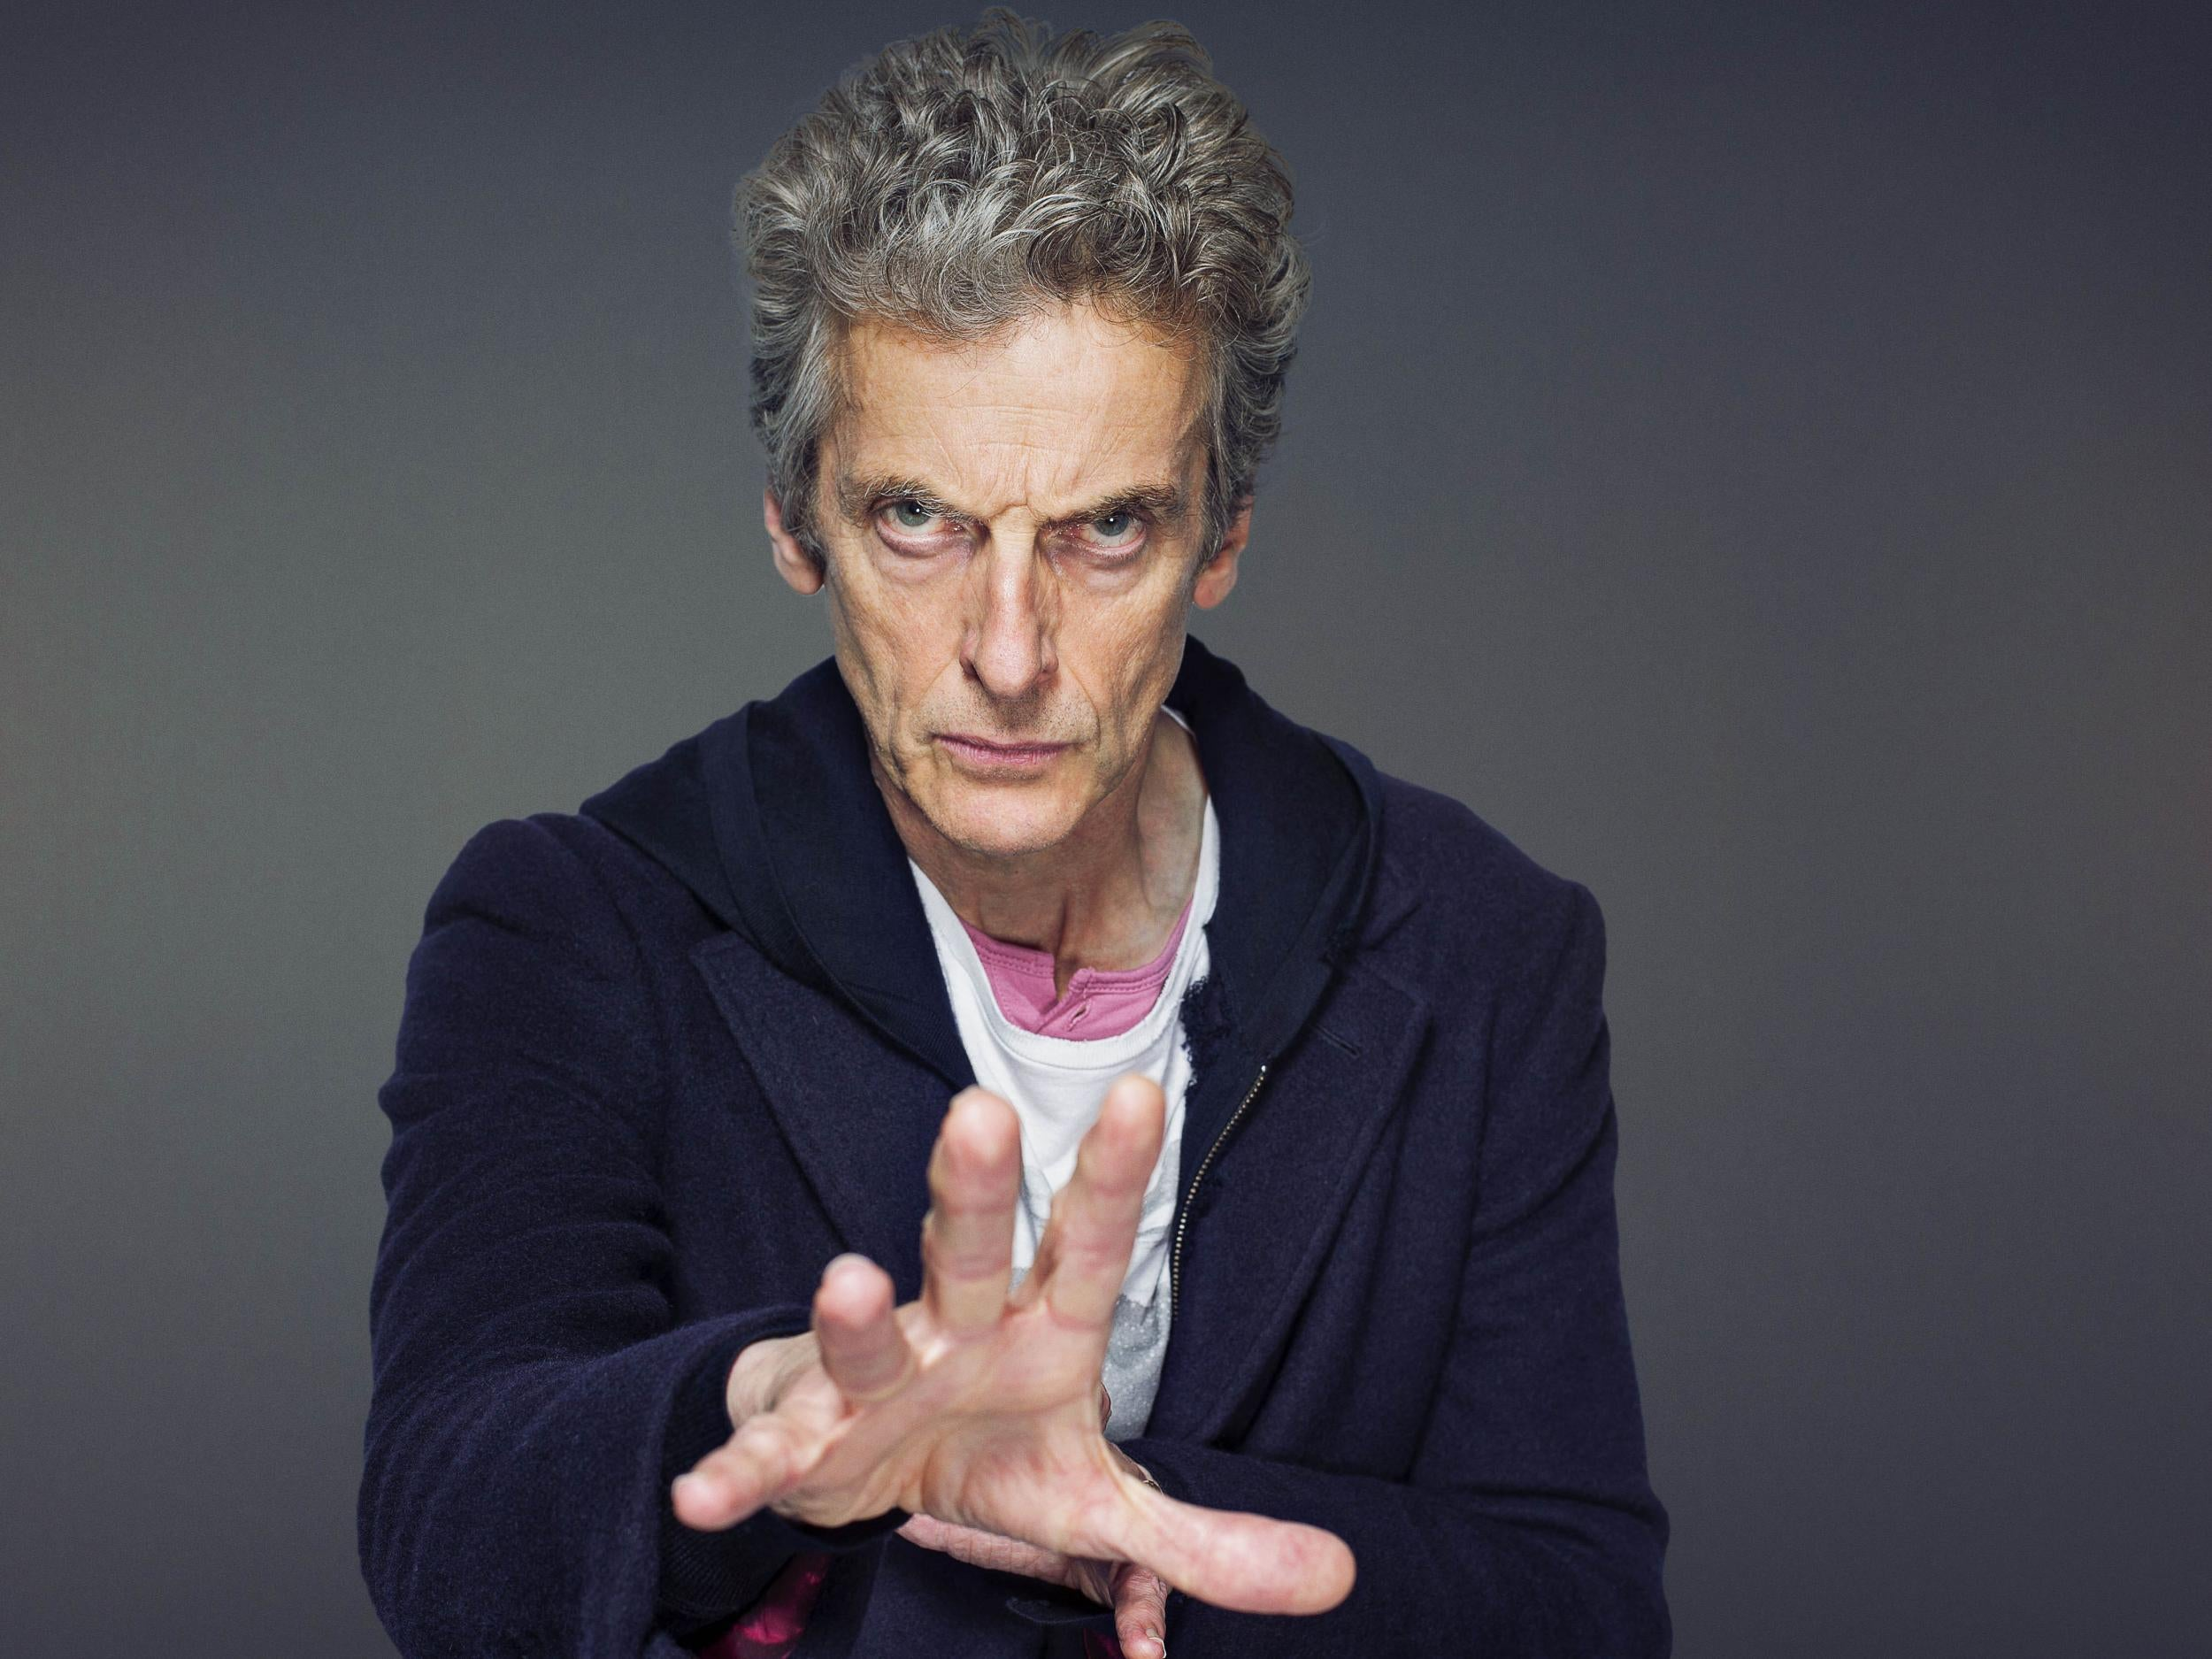 The personal life of Peter Capaldi 22